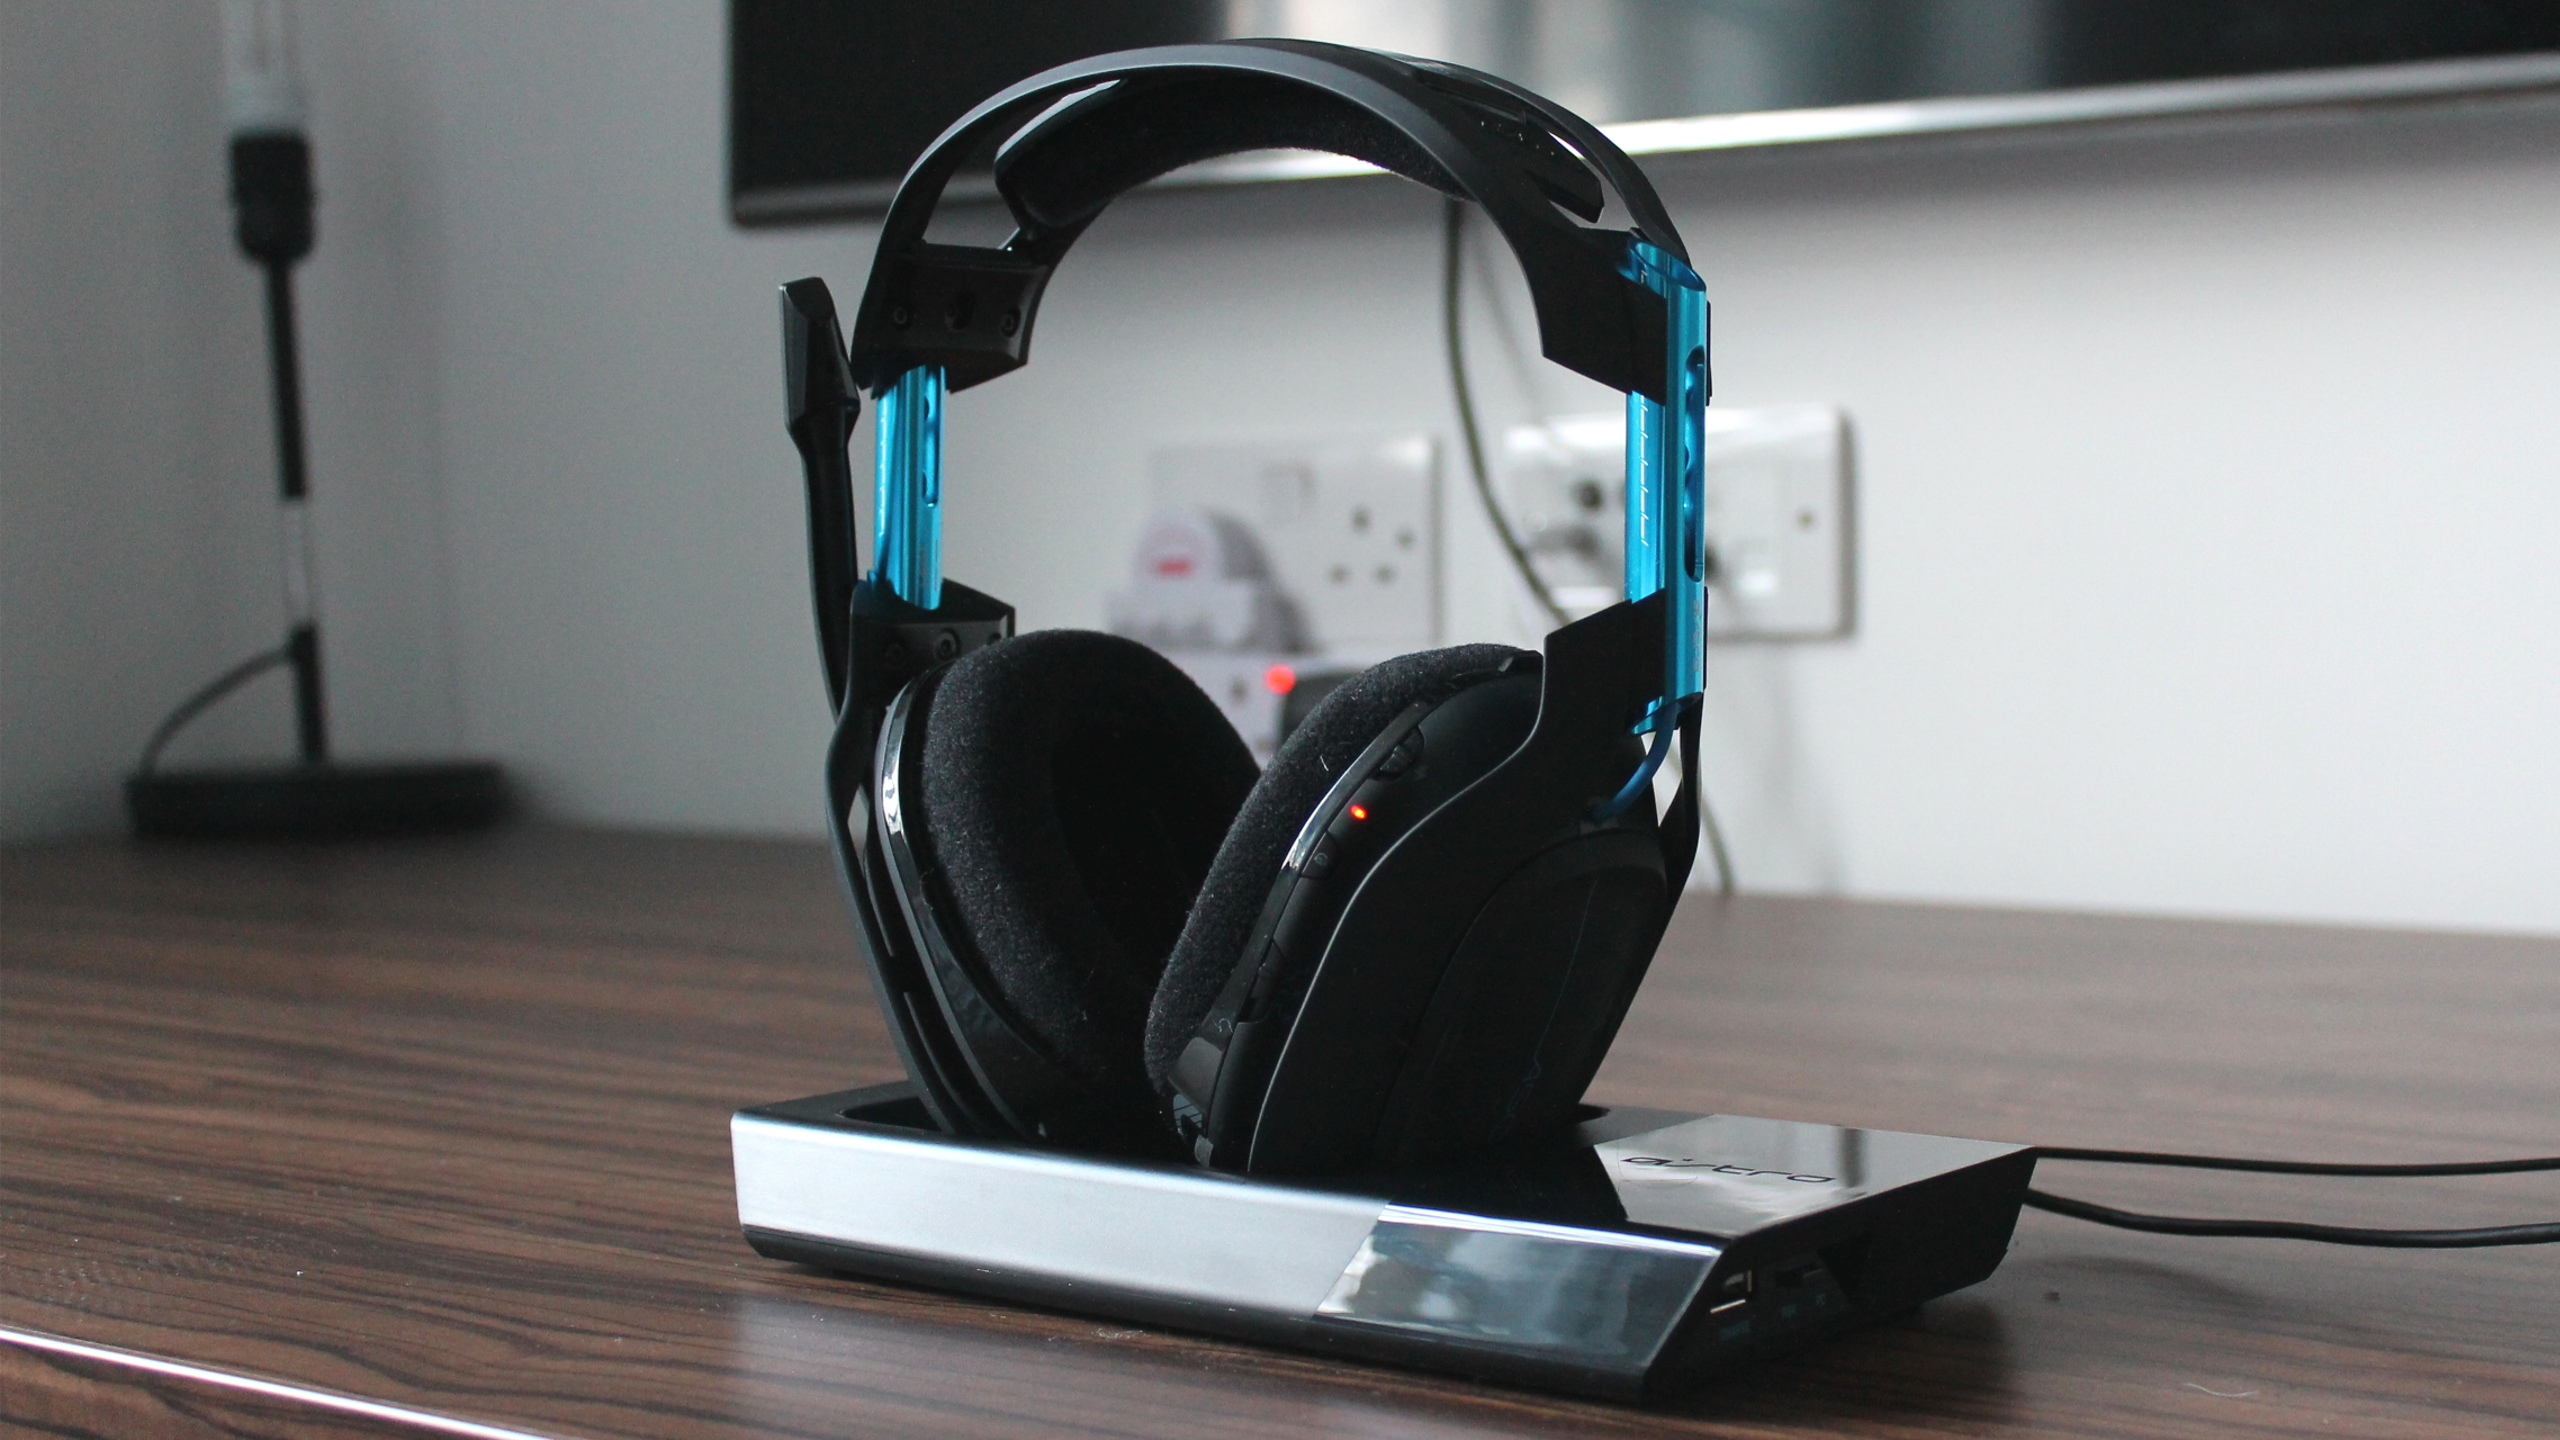 The best PC gaming headsets 2019: the best gaming headsets on the